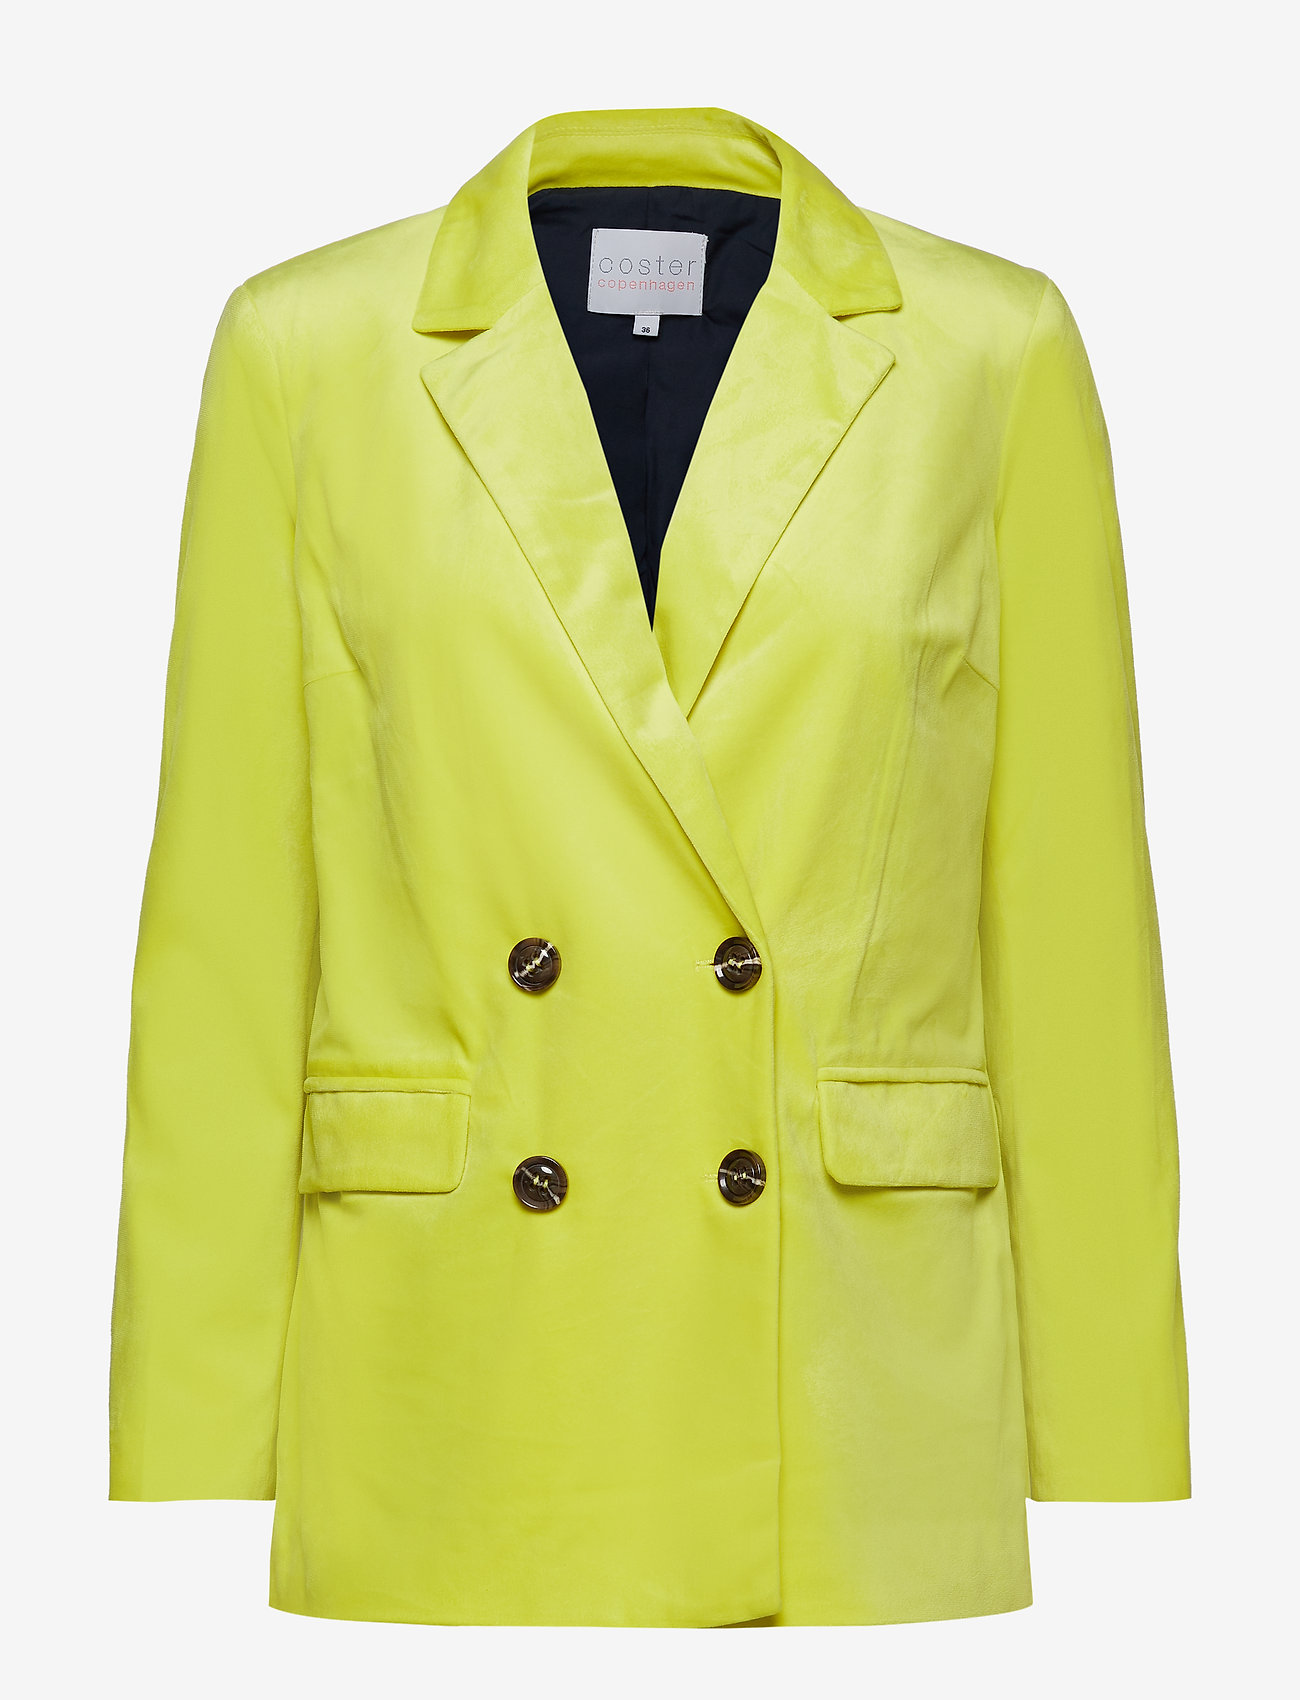 Coster Copenhagen - Suit jacket w. button closure - vestes tailleur - neon yellow